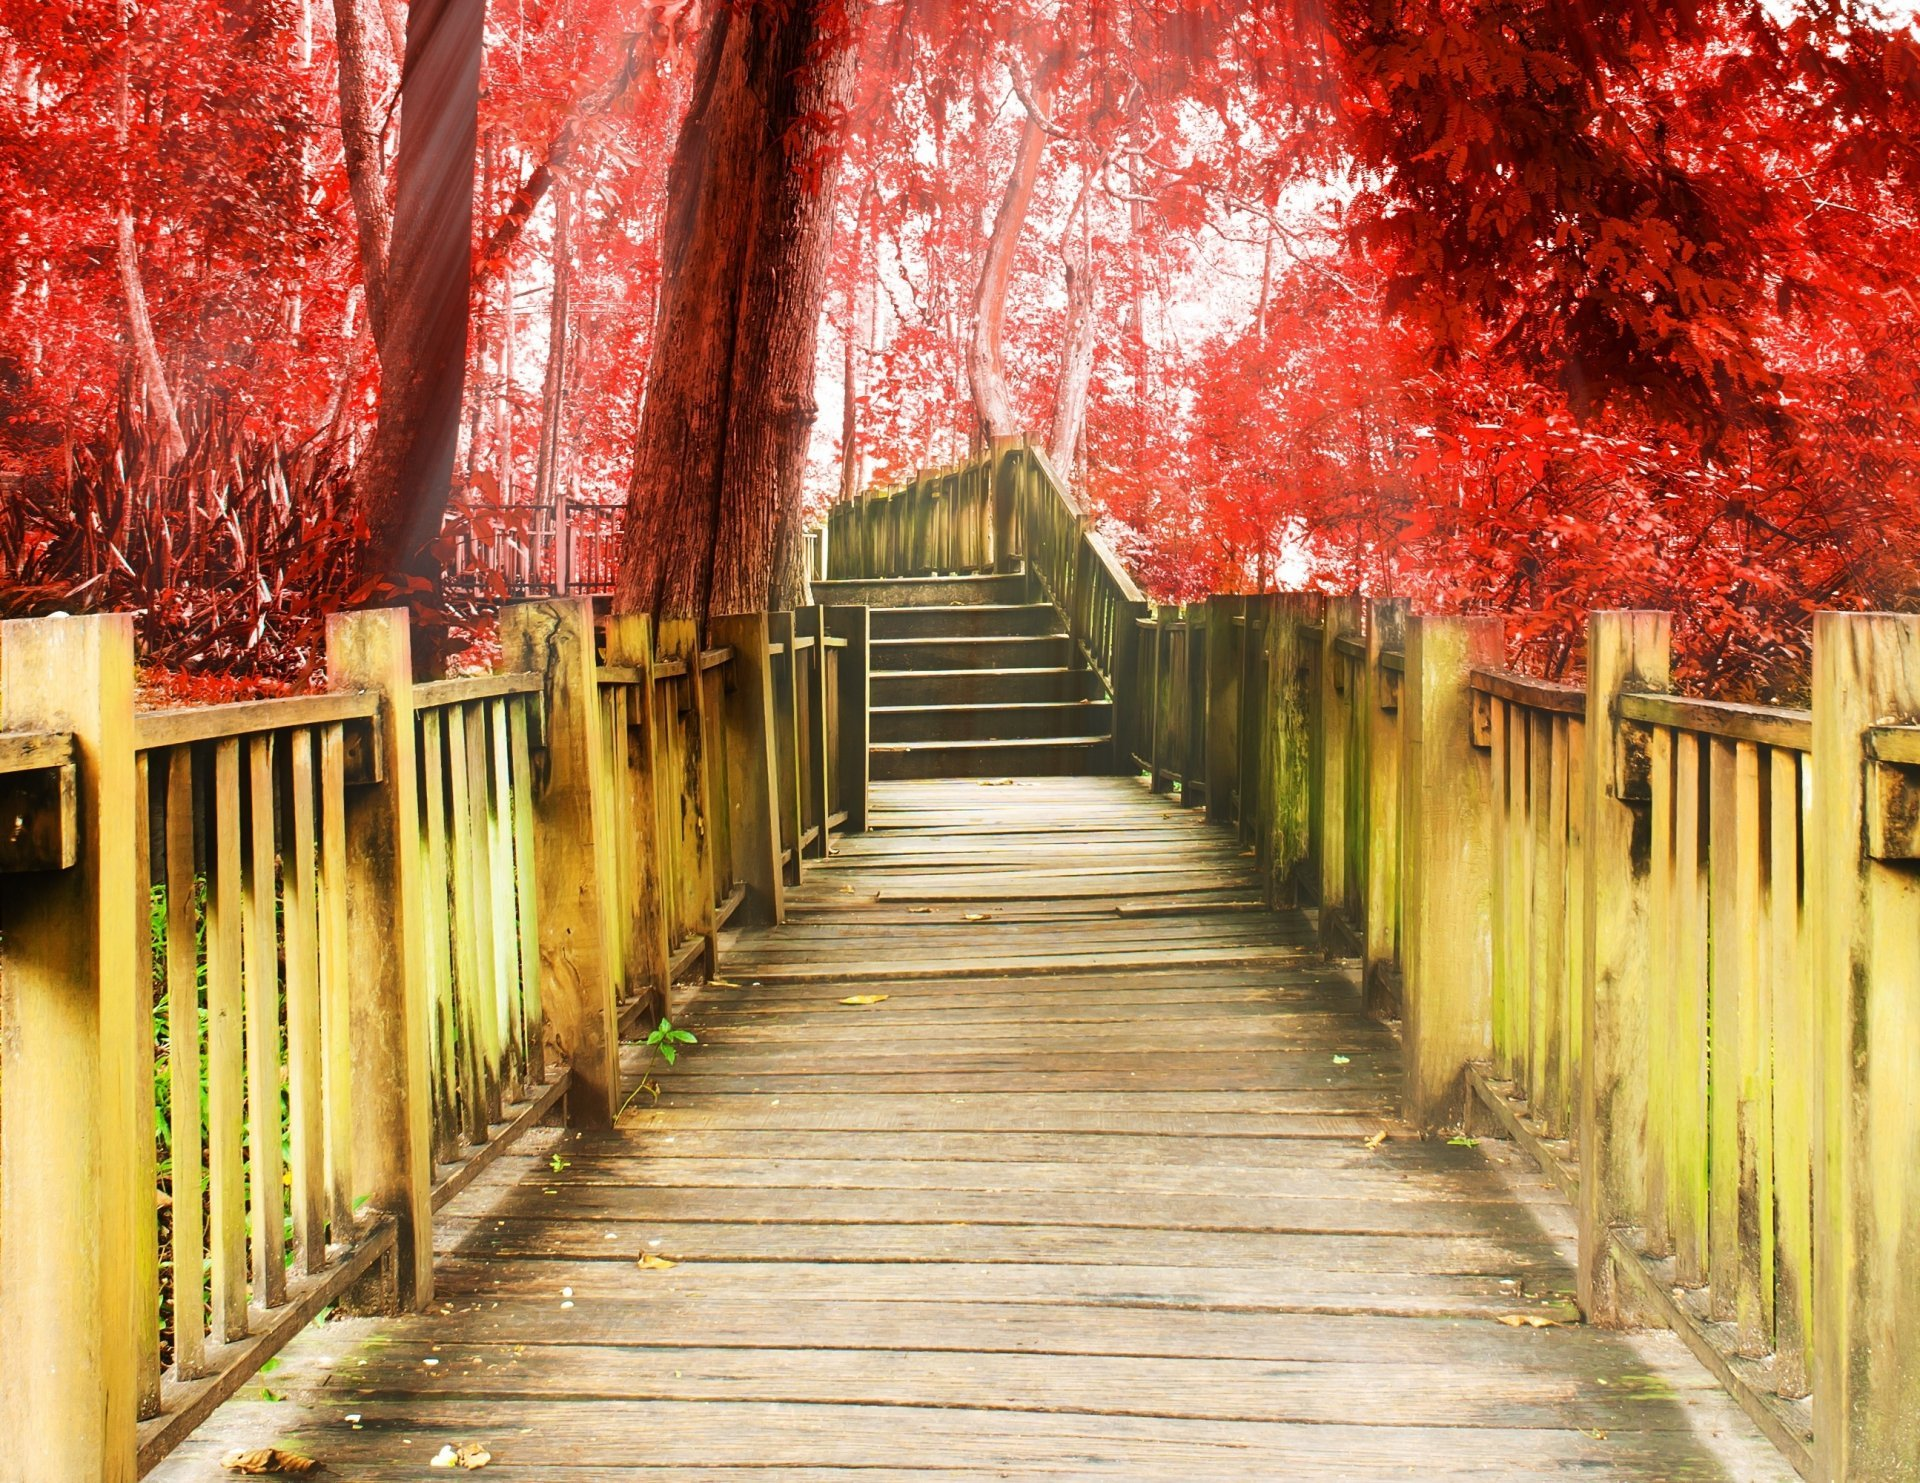 Miscellaneous Track Stairs Degree A Step Tree Red Background - Background Images Hd Full Screen , HD Wallpaper & Backgrounds